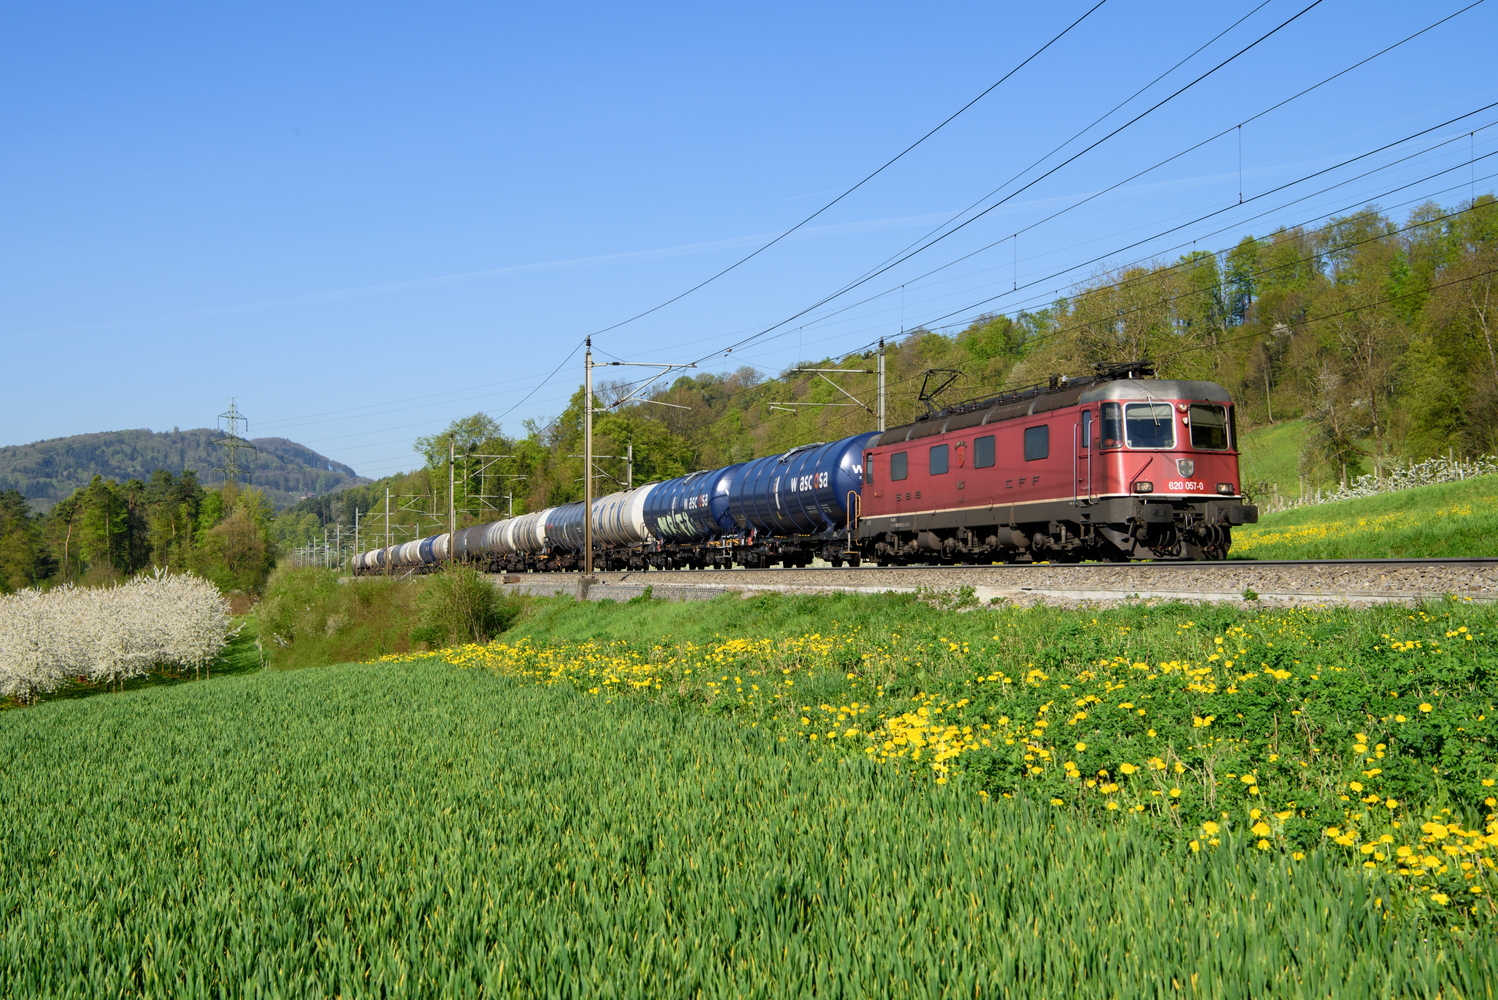 SBB Re 66 11657 Estavayer-le-lac 5.jpg